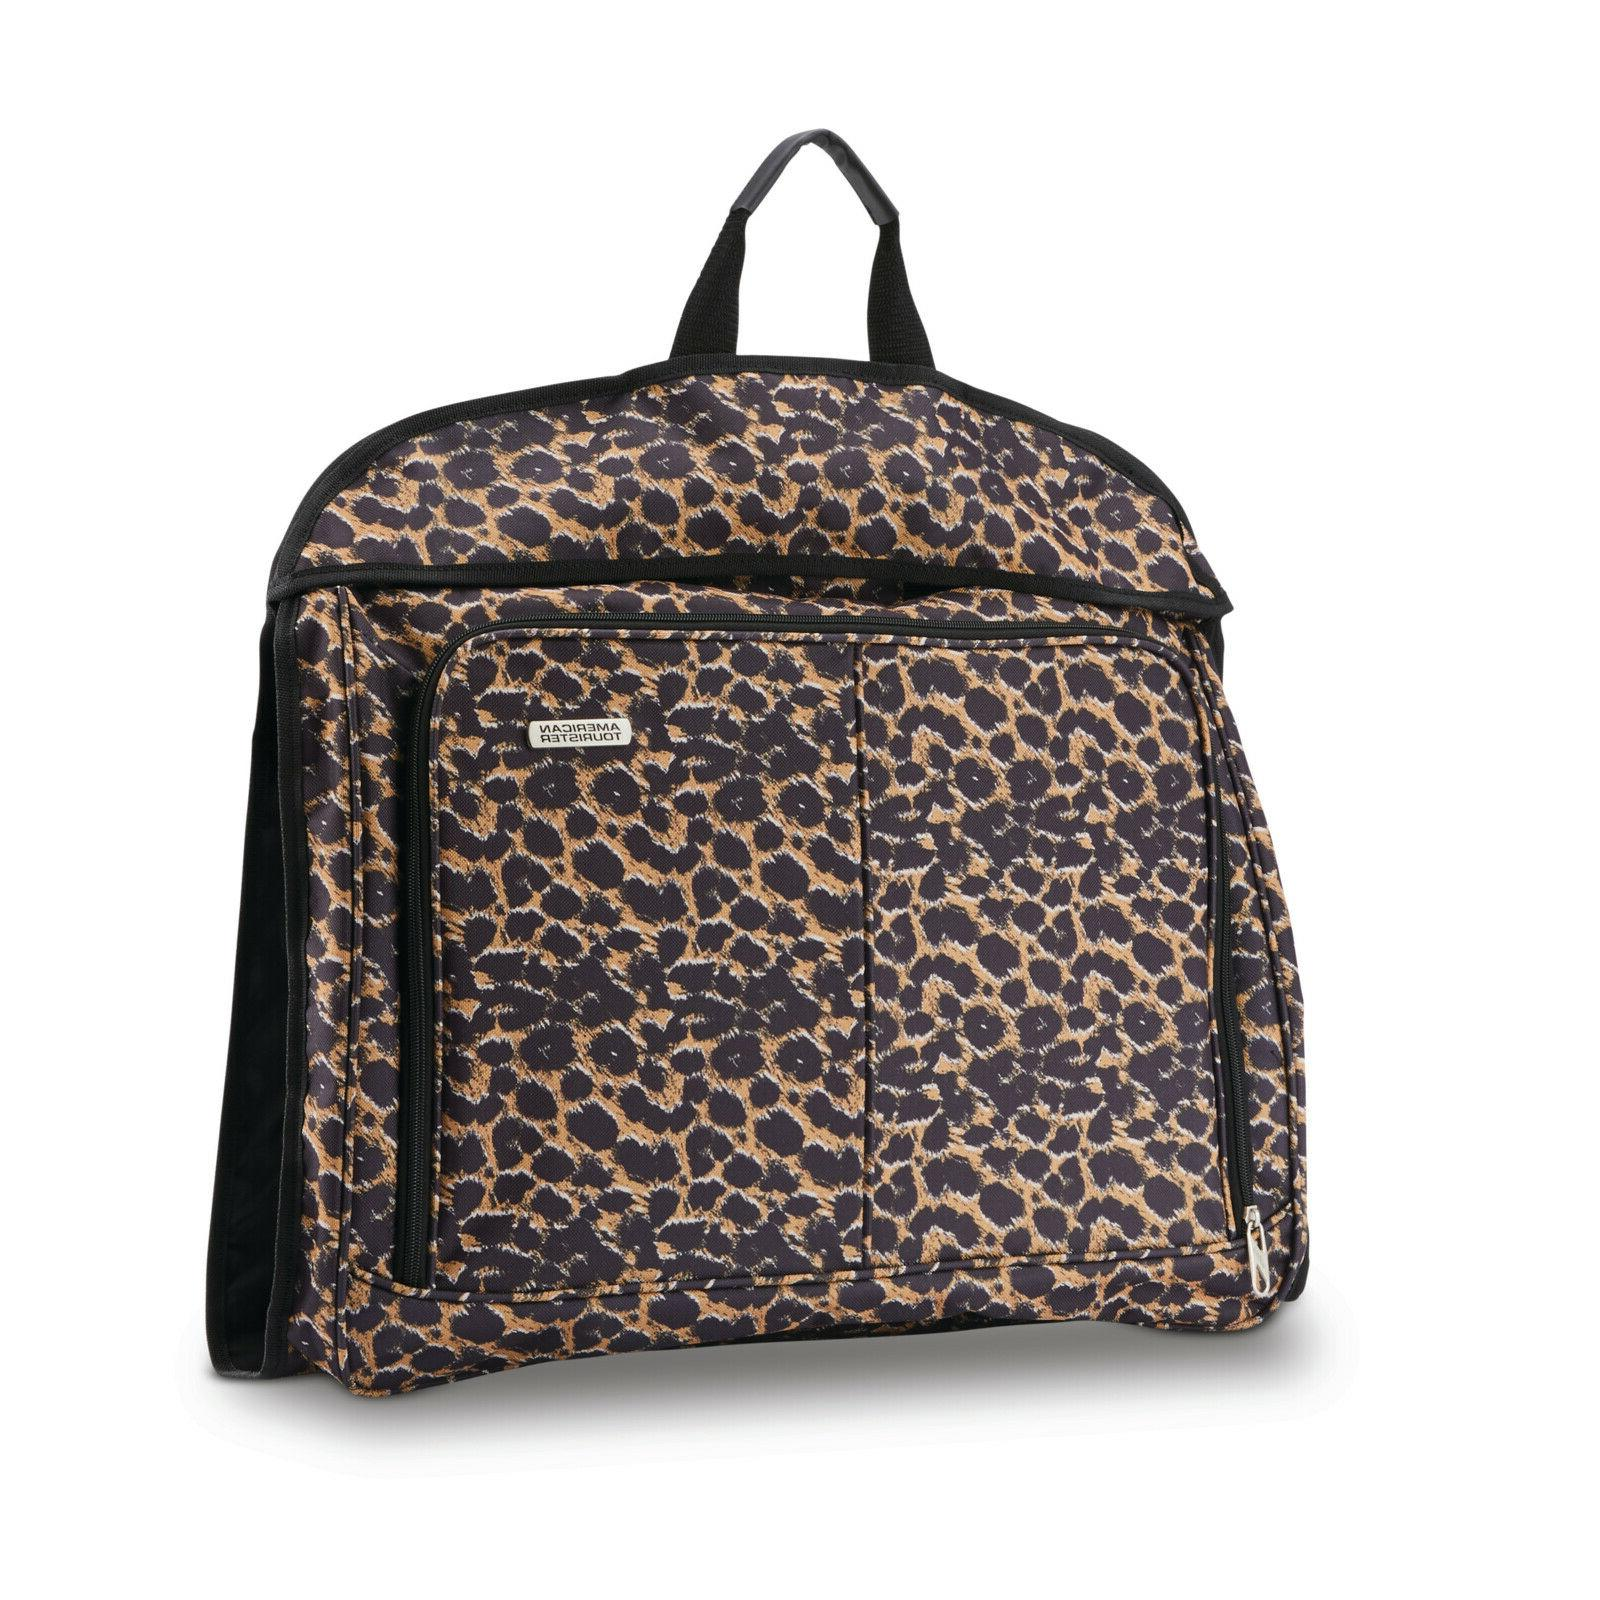 American Spinner Luggage Leopard Womens